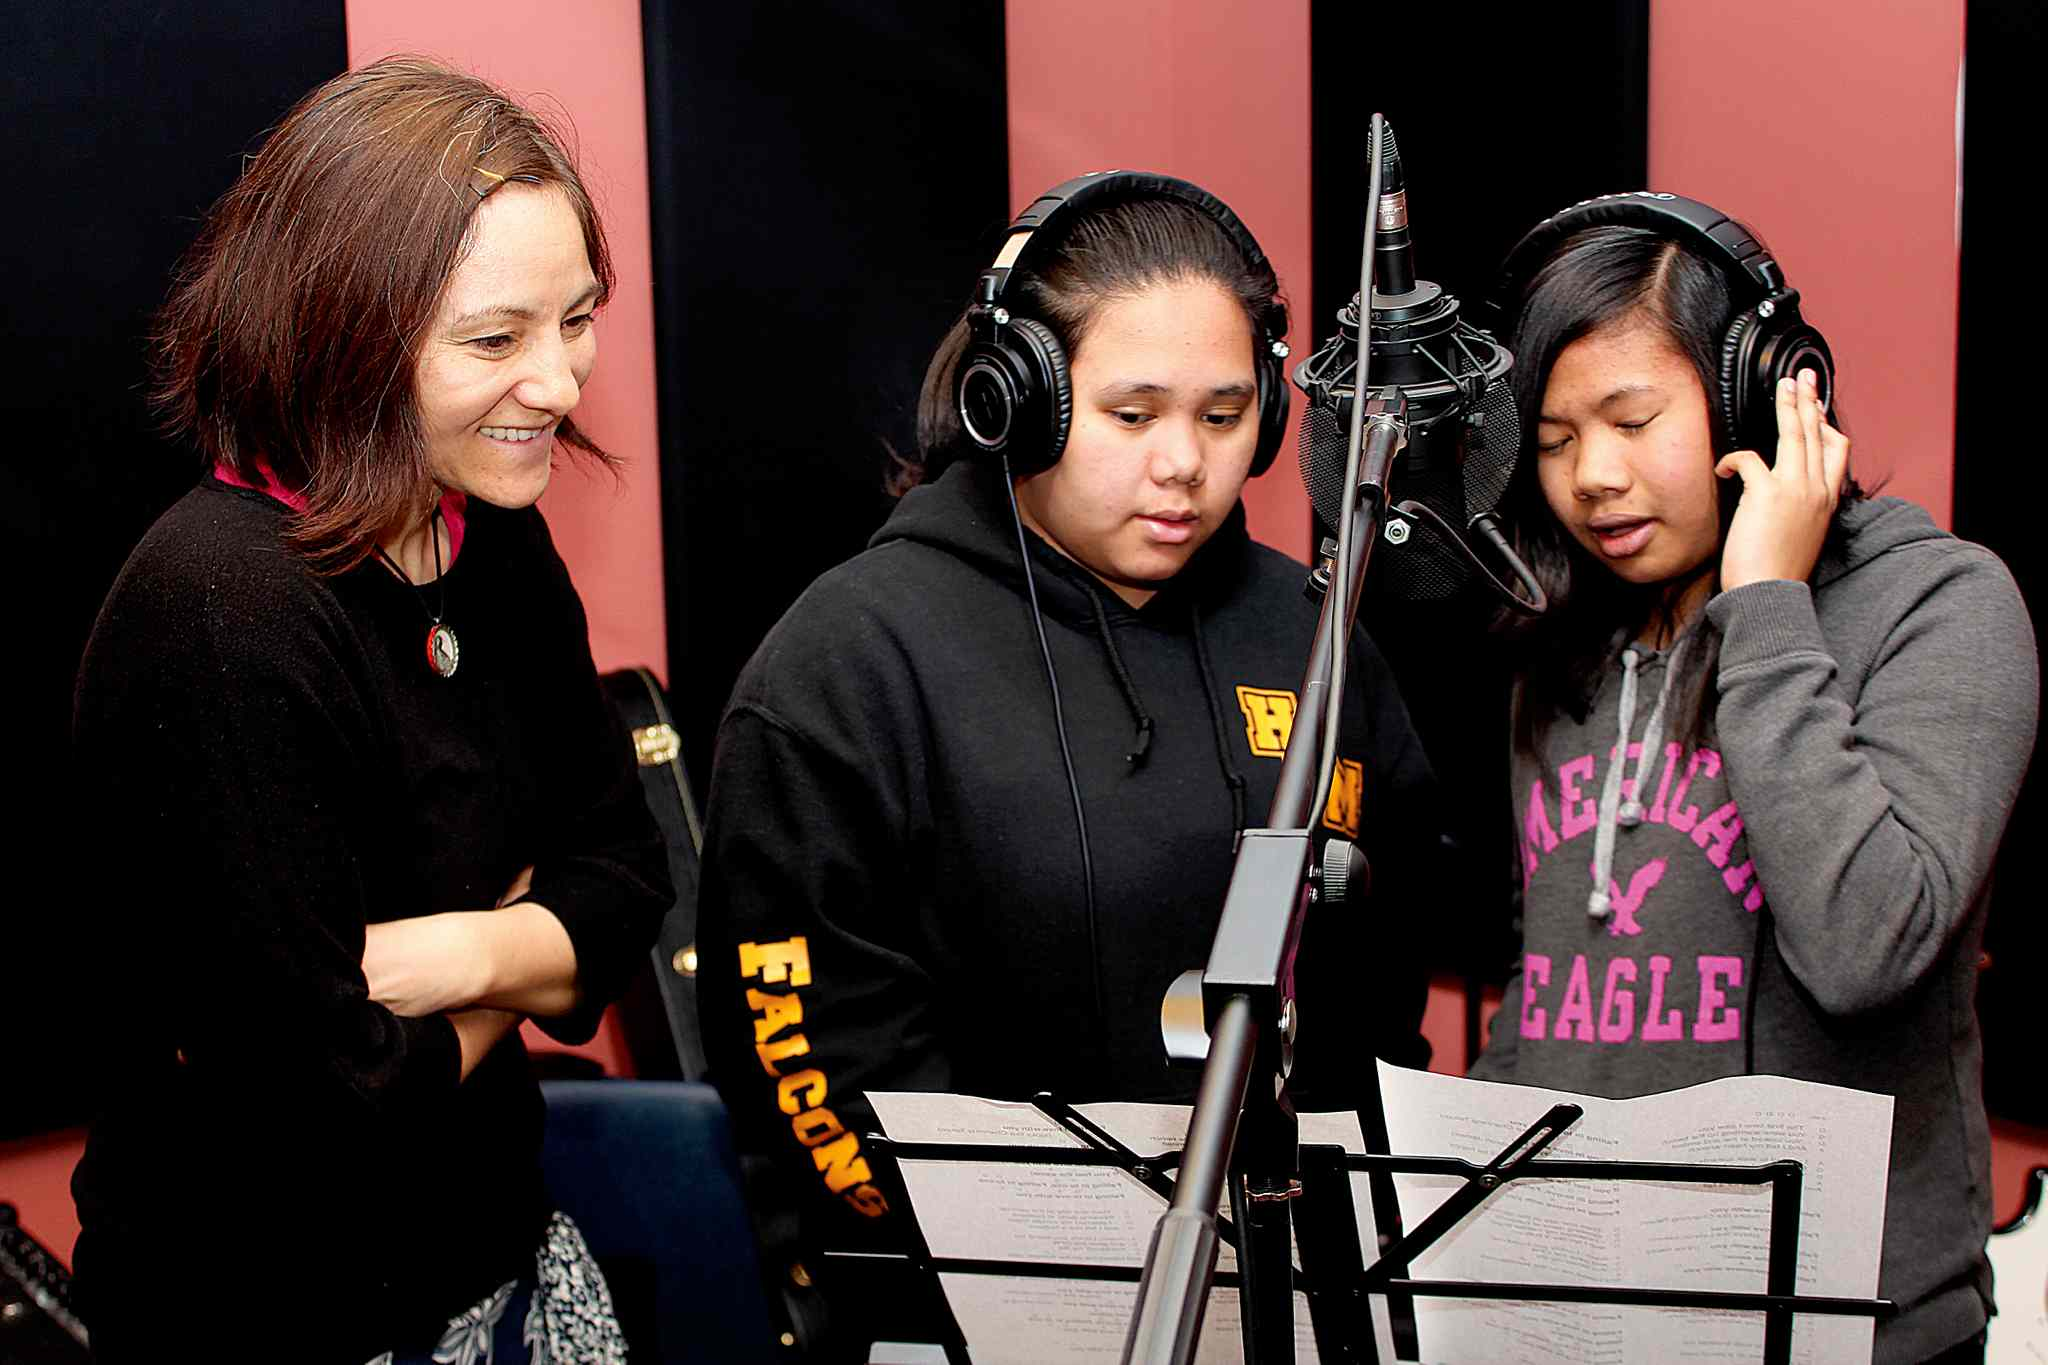 Hugh John MacDonald students Andrea Soquiat (centre) and Jerrileen Cuevas (right) are joined by Keri Latimer in the recording studio at the Broadway Neighbourhood Centre as part of the Winnipeg Folk Festival's Musical Mentors program.